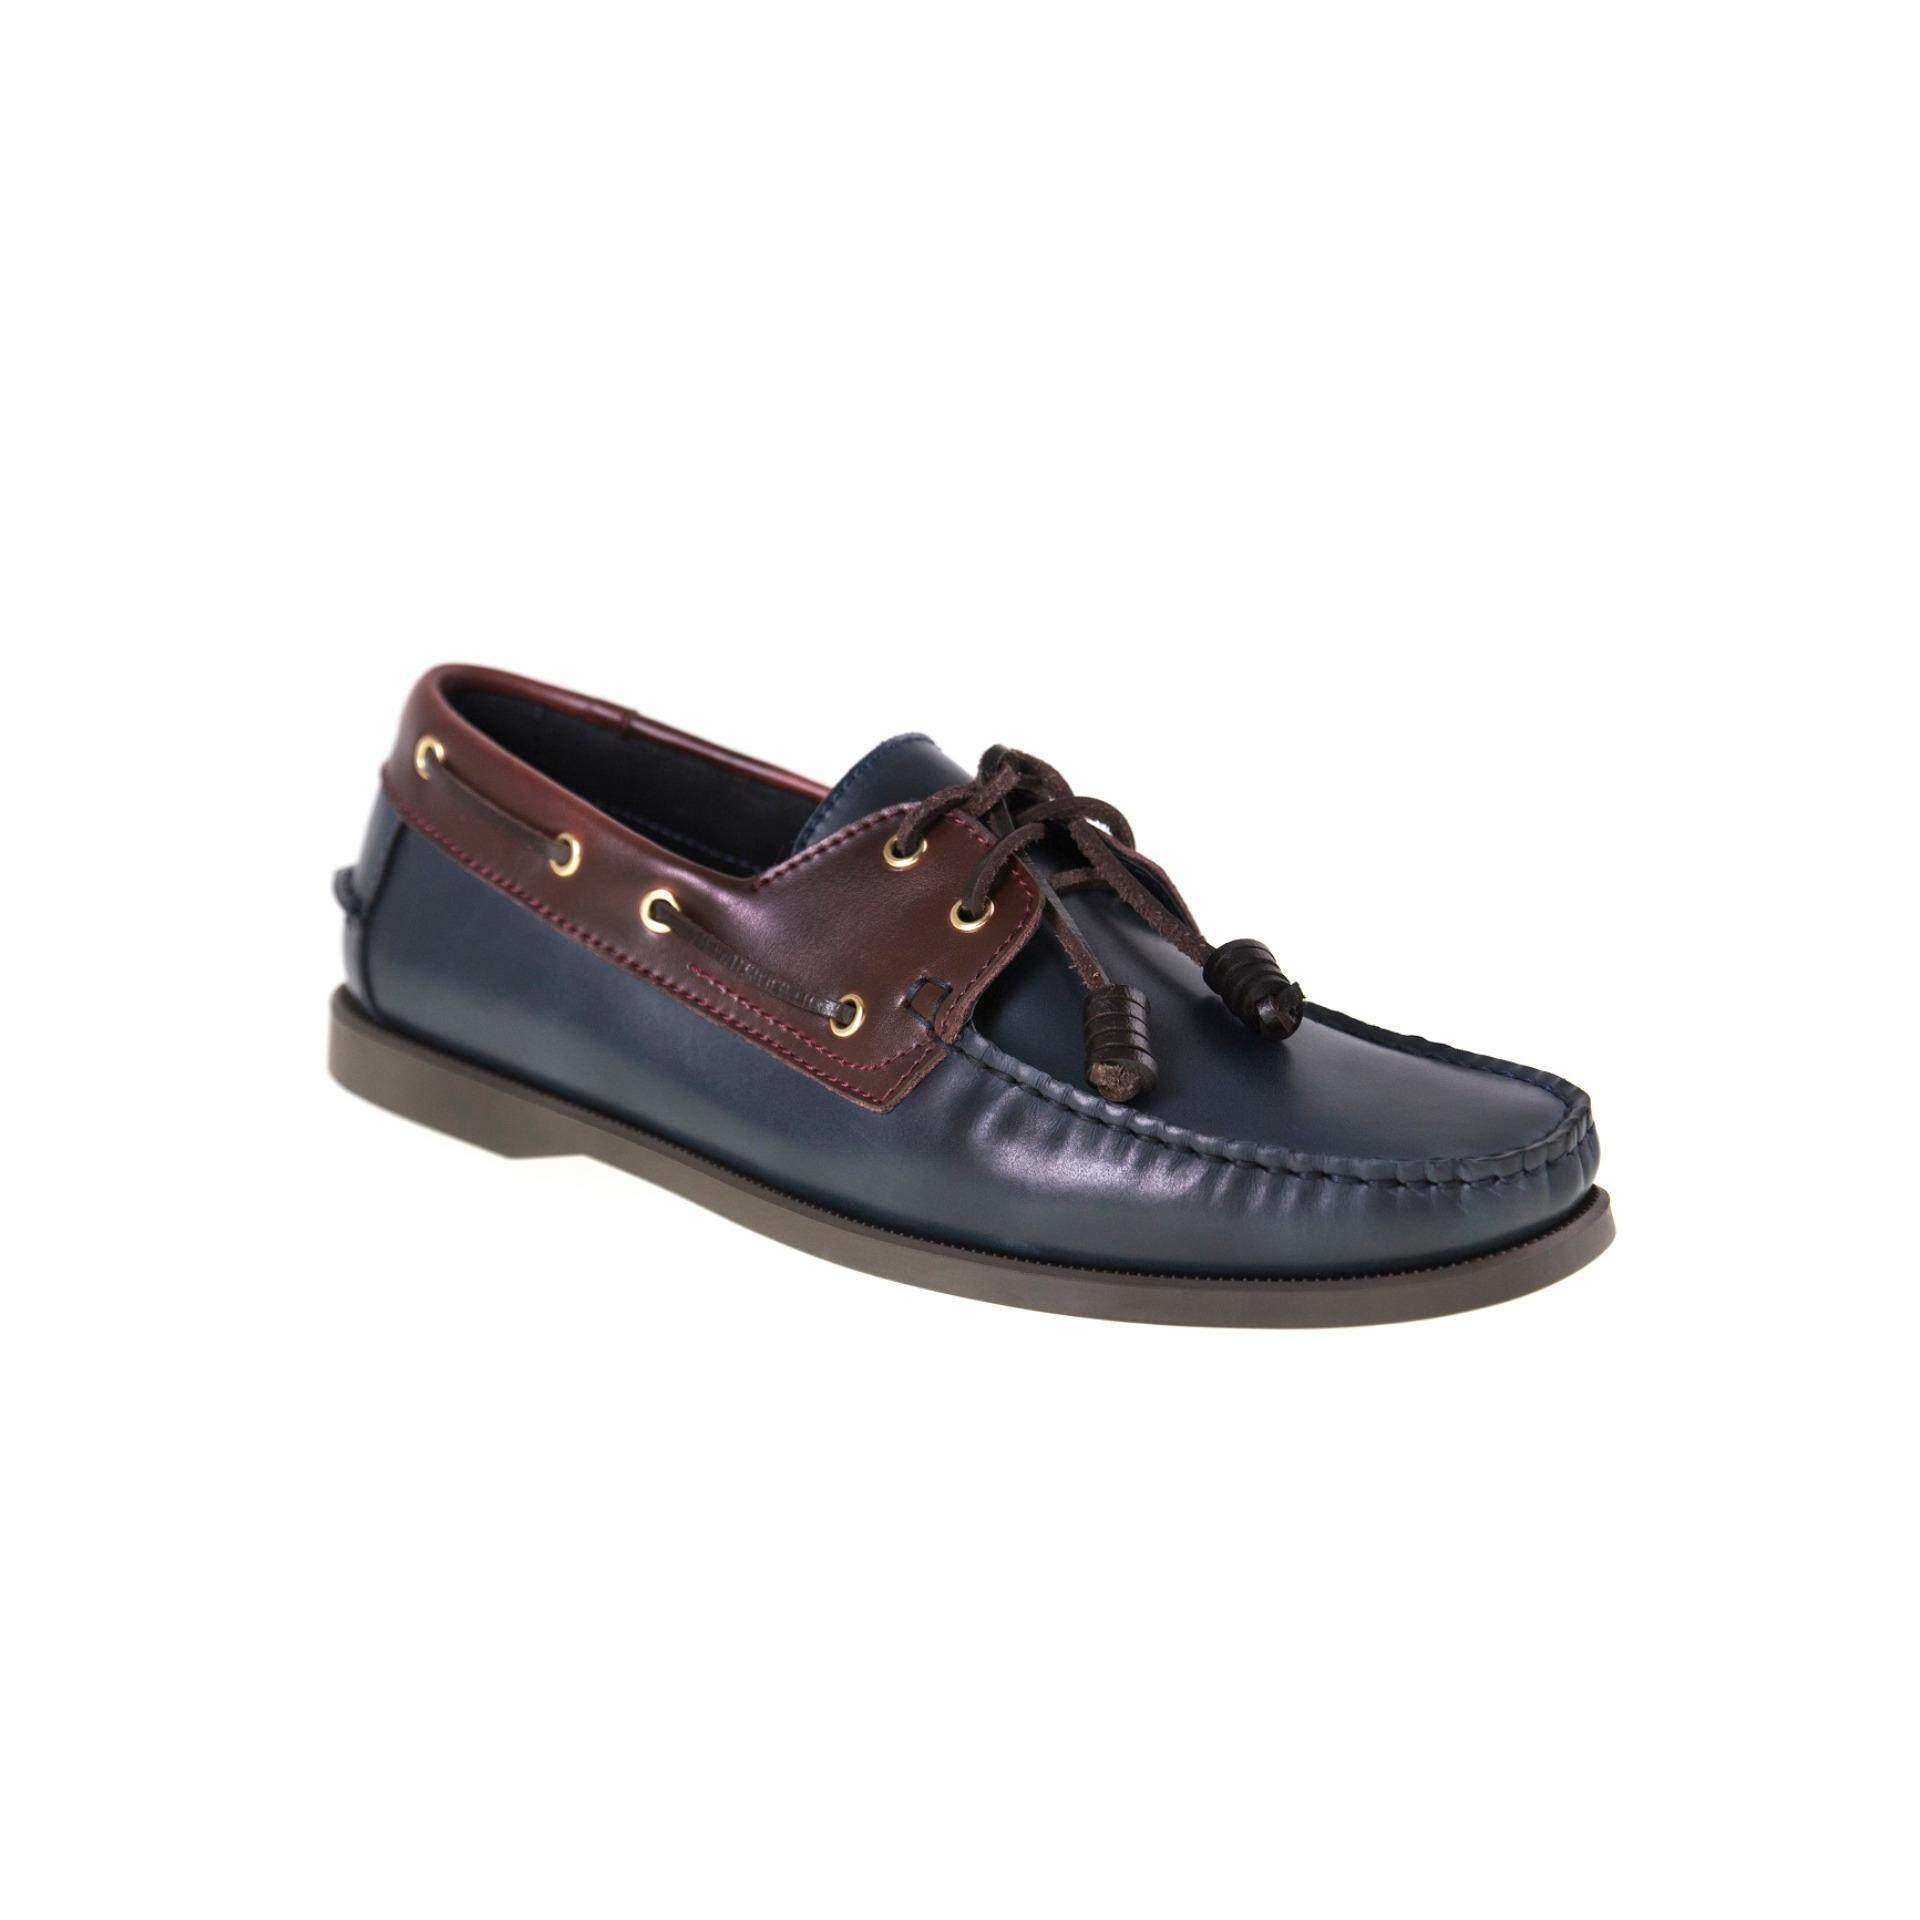 Tomaz C999B Leather Boatshoes (Navy)